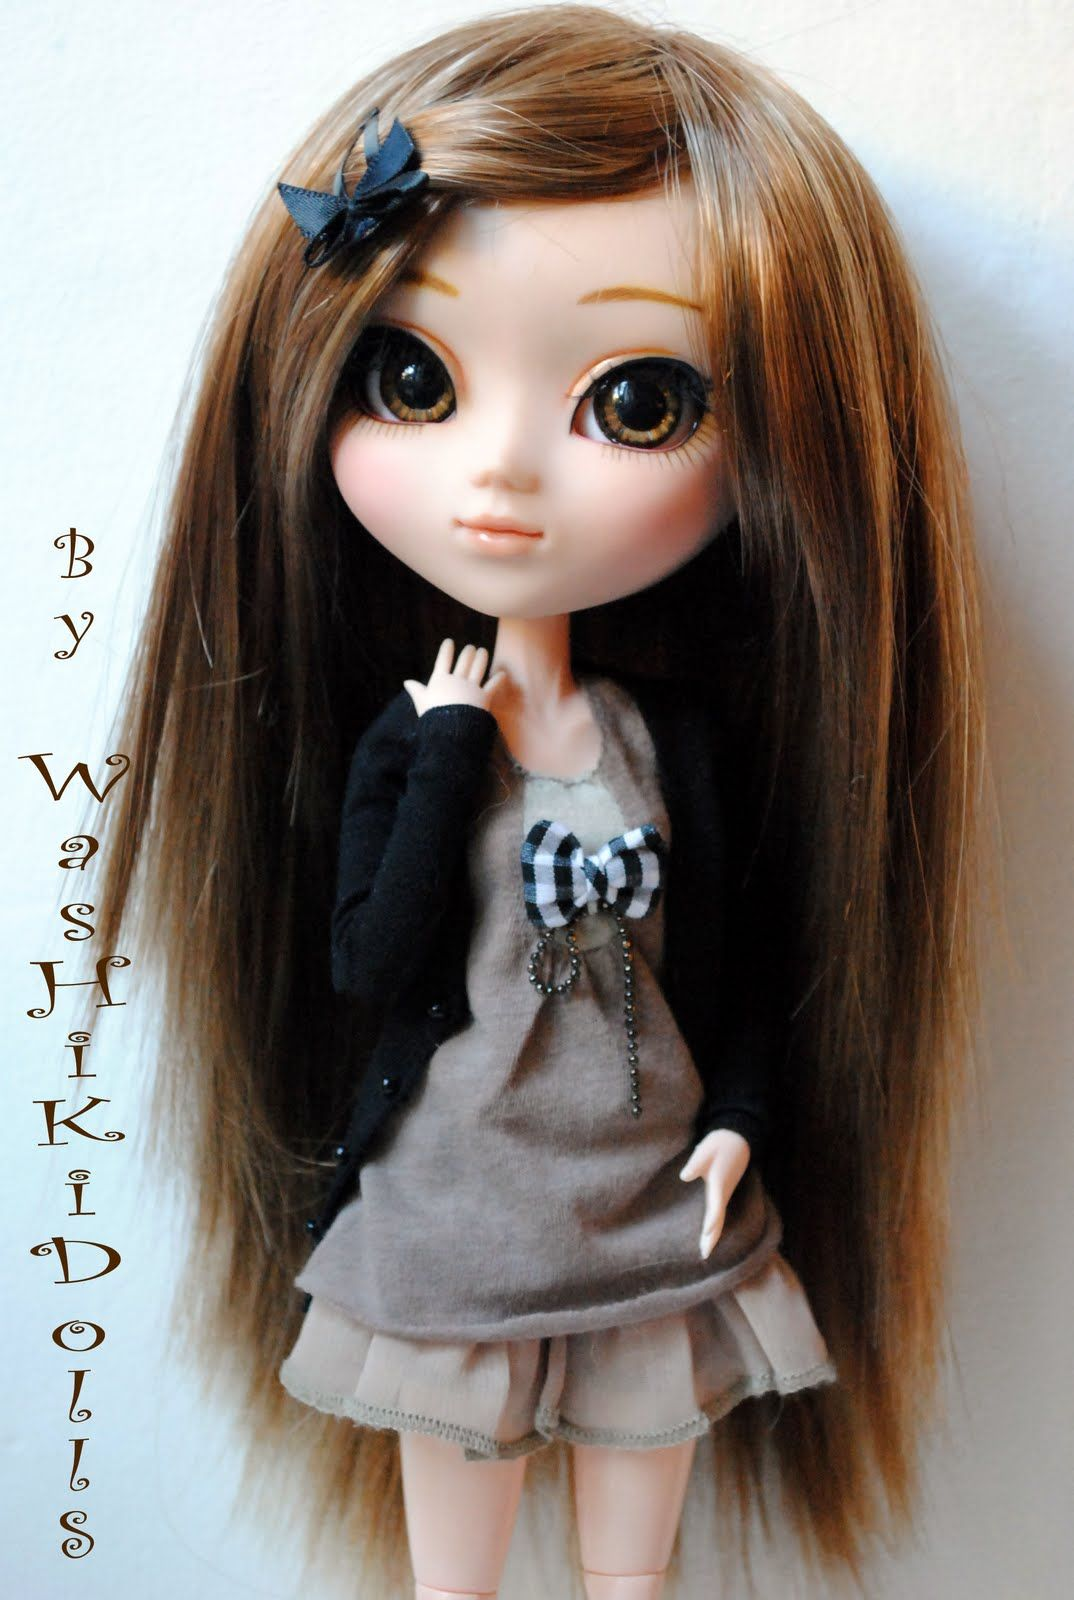 Pin by katie caddle on dolls pinterest dolls